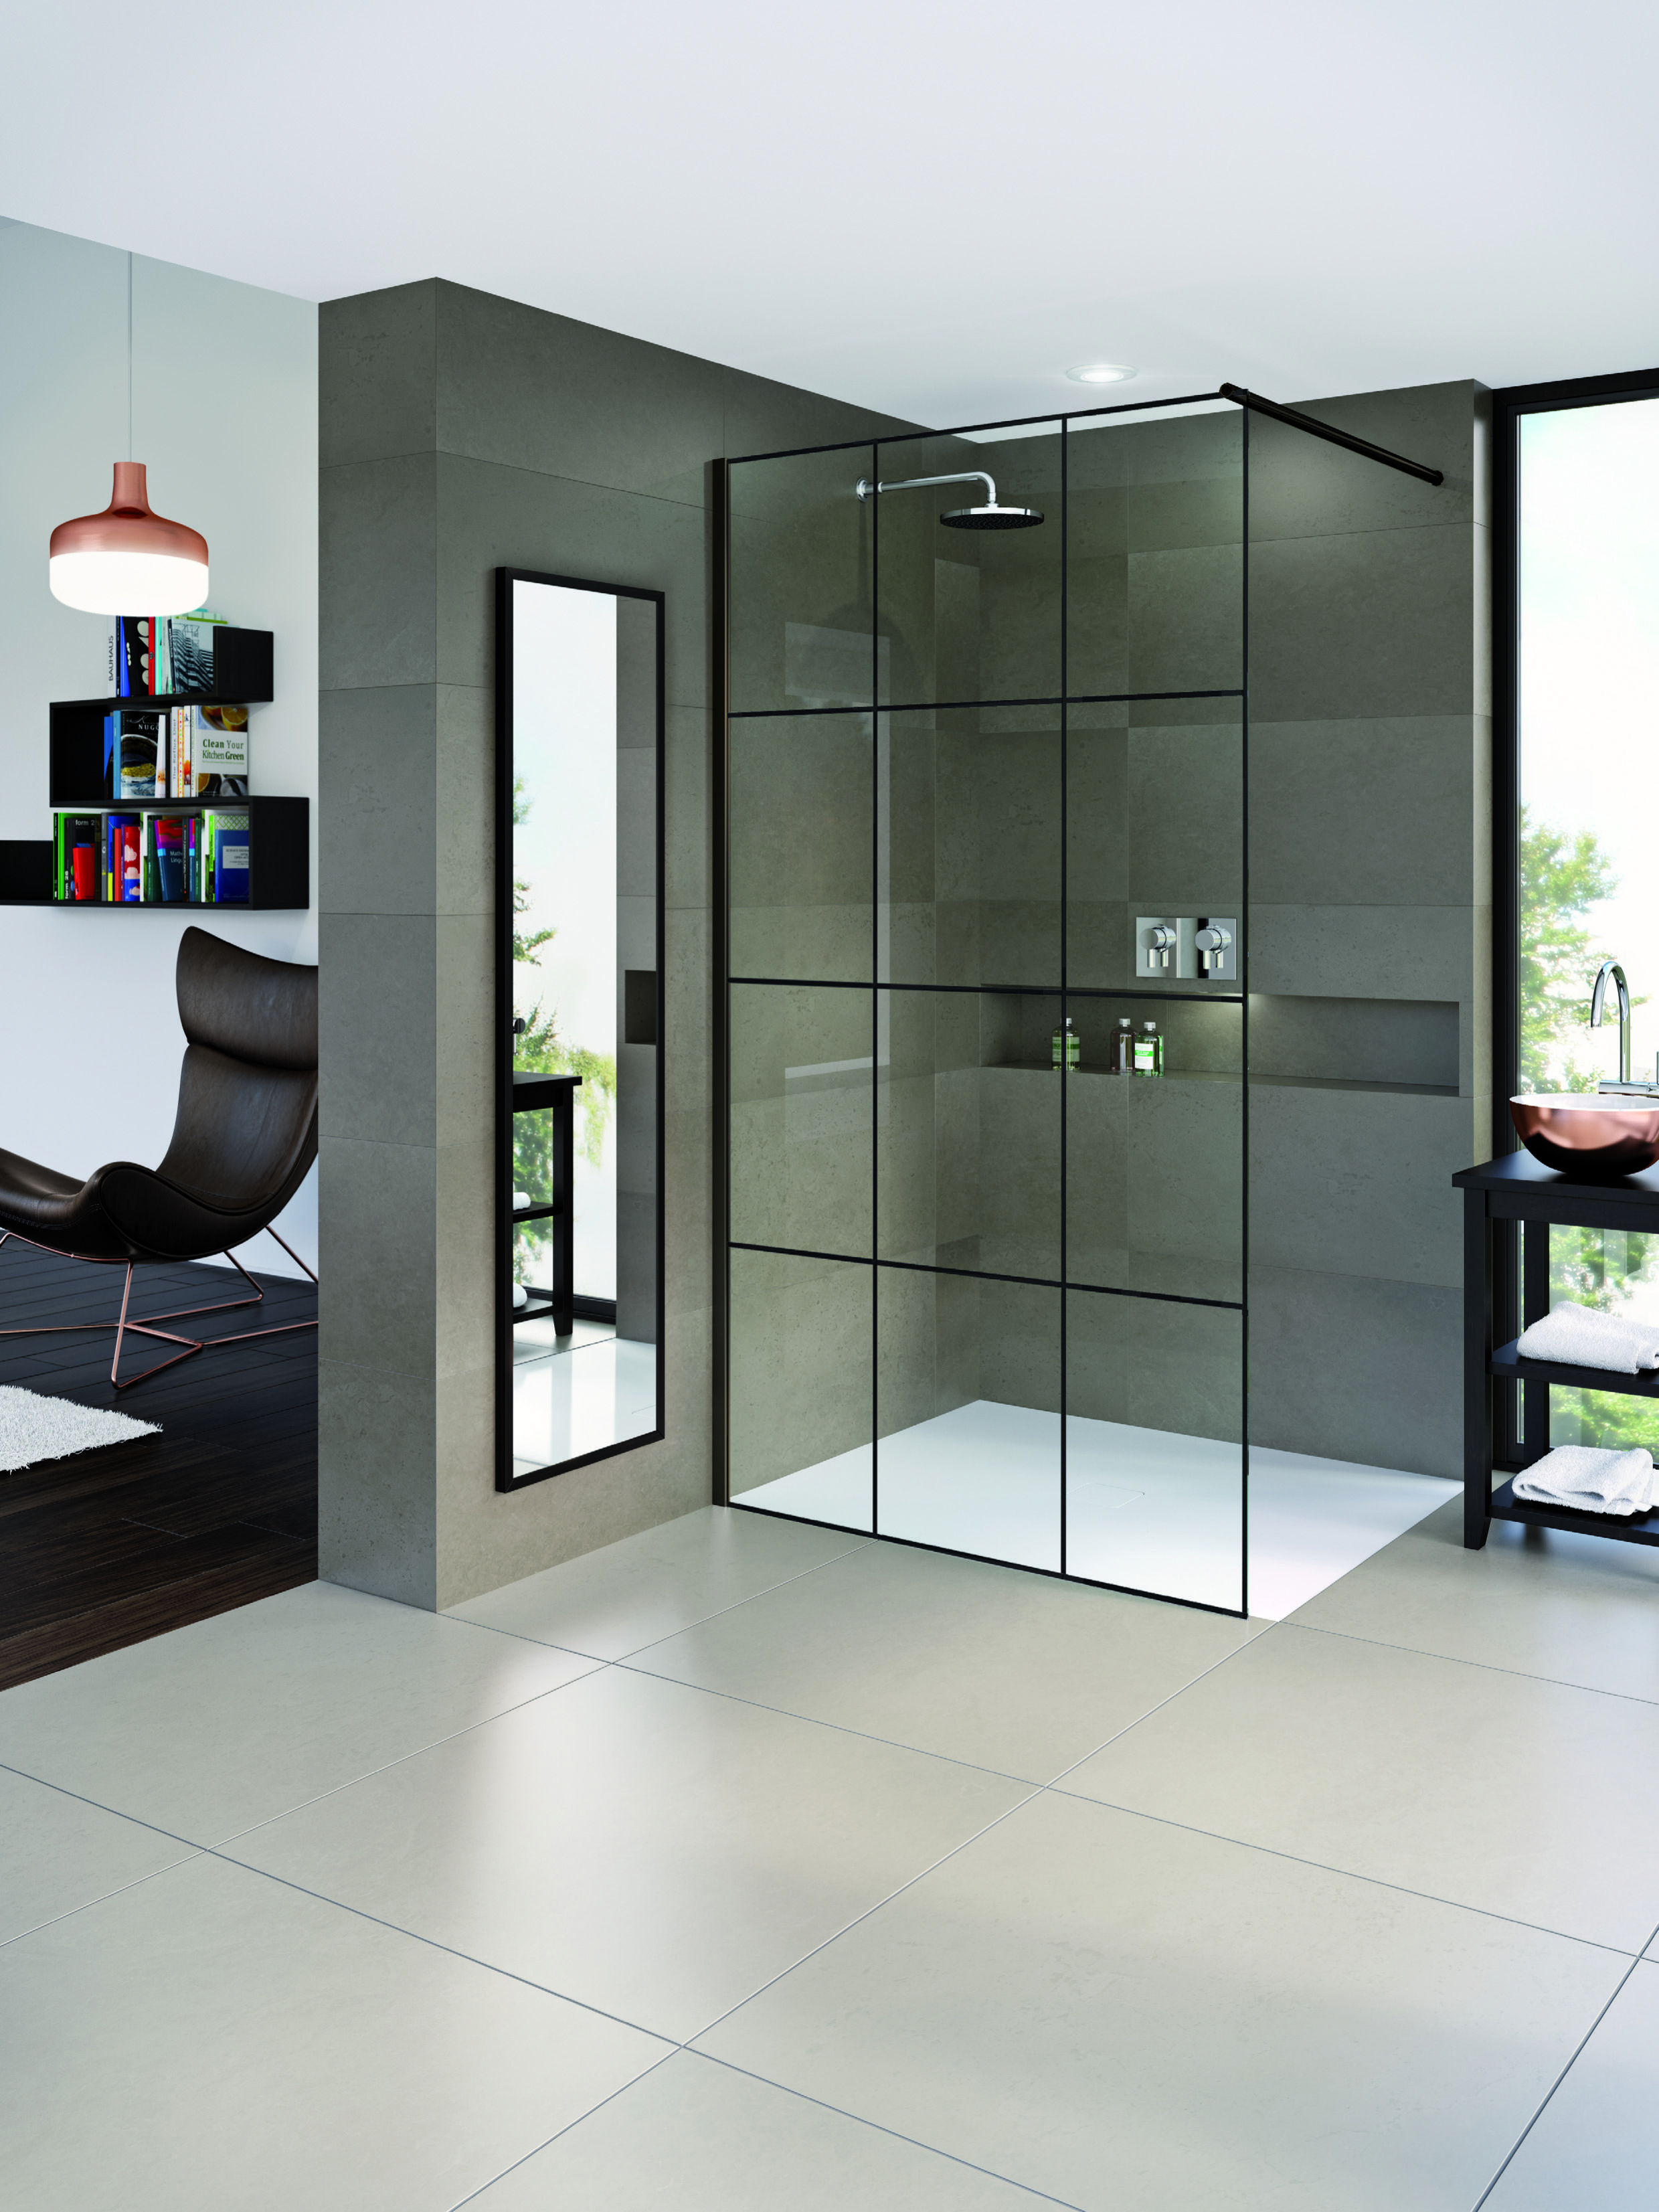 Matki One Wet Room Panel With Crittall Glass Available To Order From Matki Bathroom Shower Panels Shower Enclosure Bathroom Wall Panels